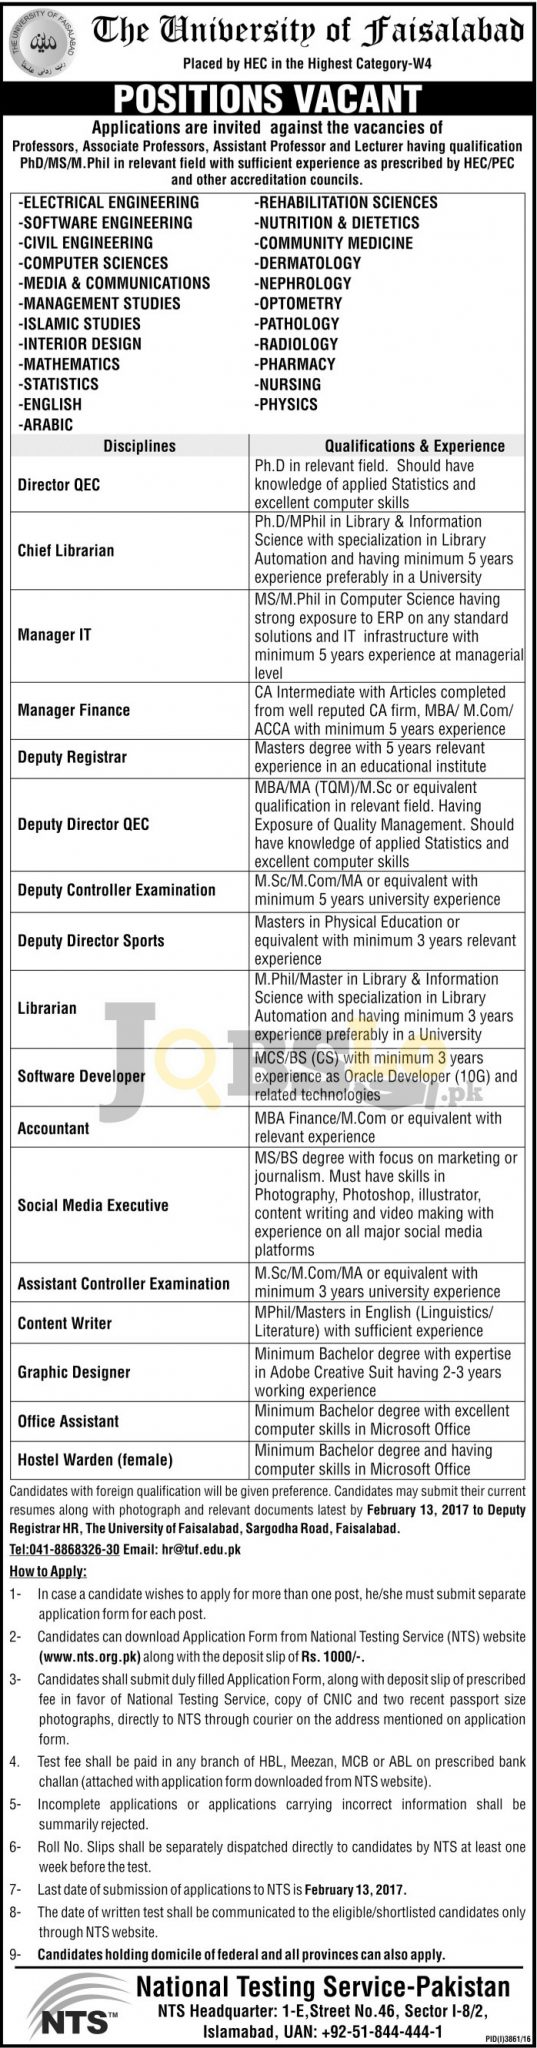 University of Faisalabad Jobs